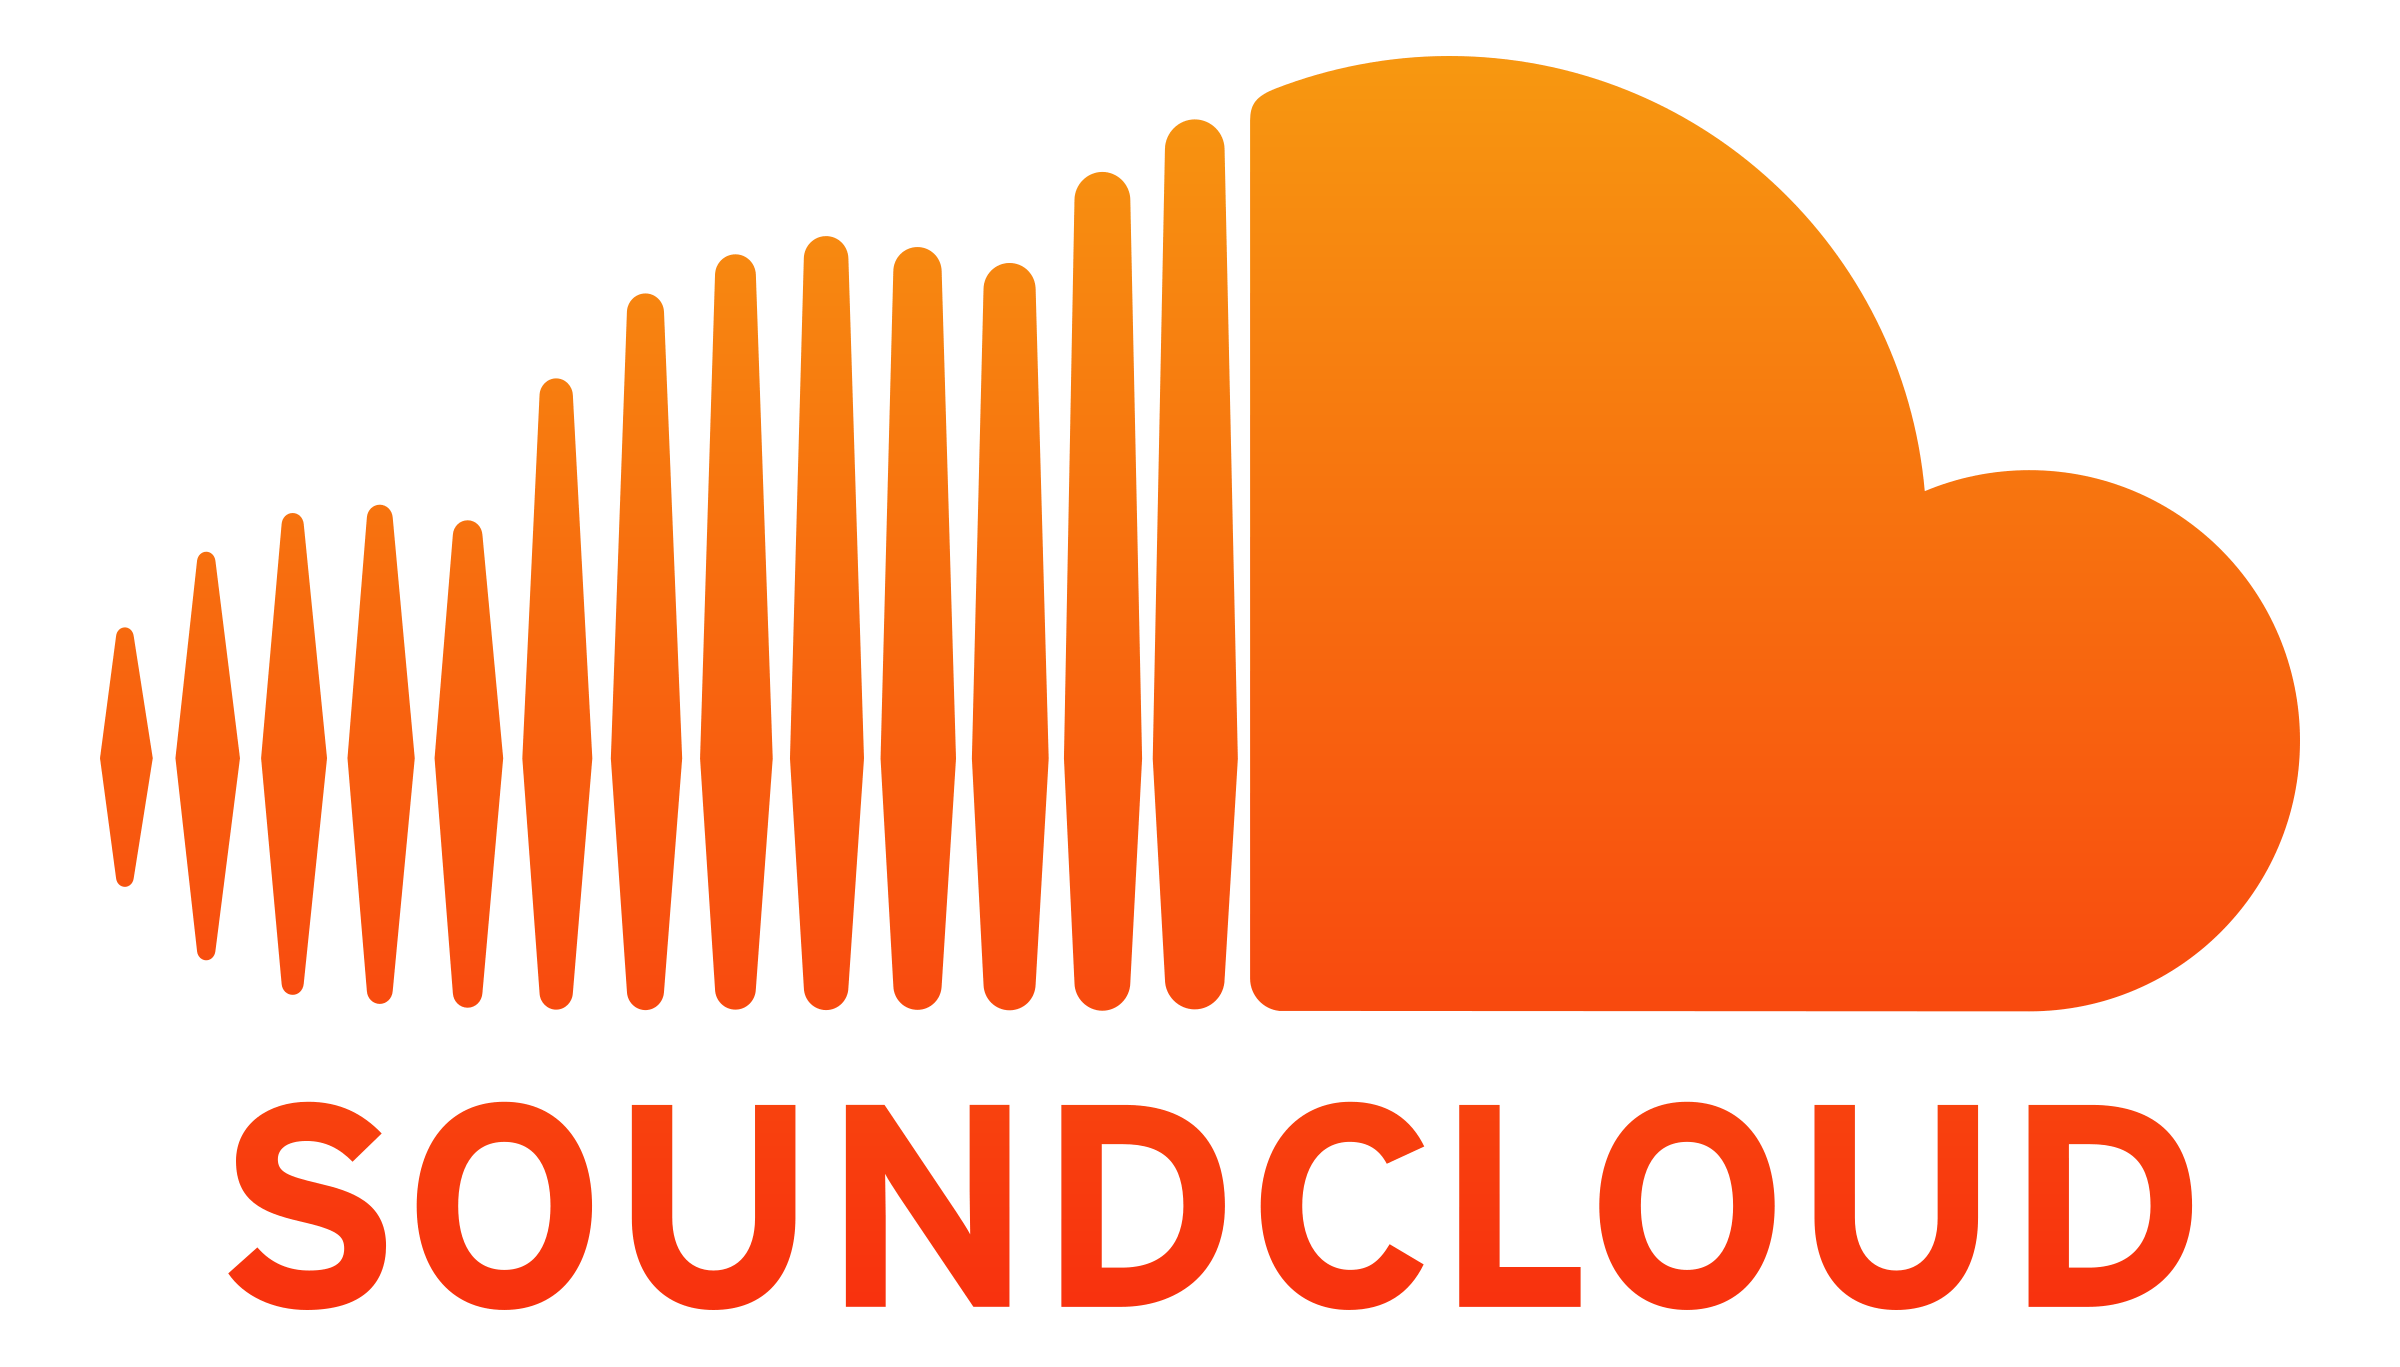 soundcloud logo png transparent amp svg vector freebie supply